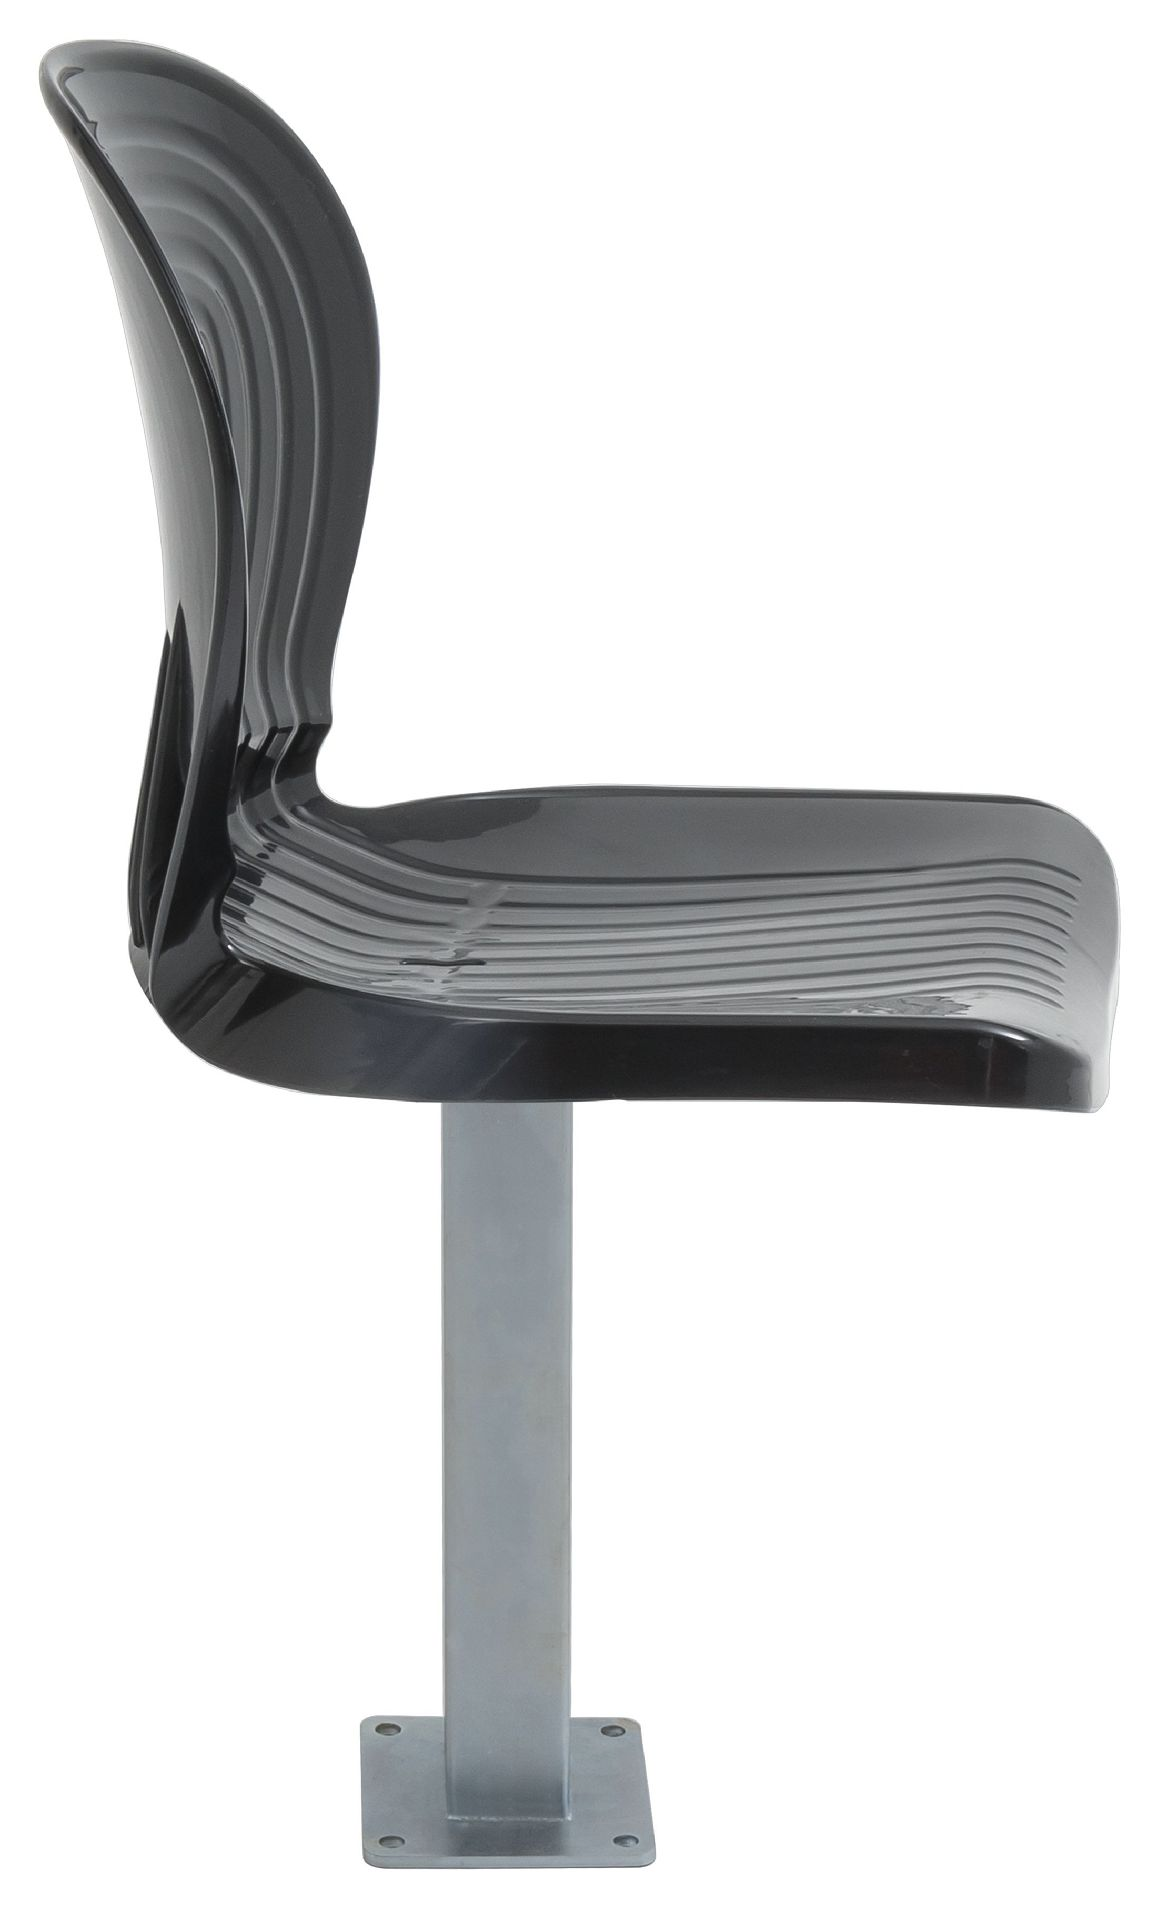 mine_backrest_monoblock_copolymer_pp_stadium_chair_seatorium_09